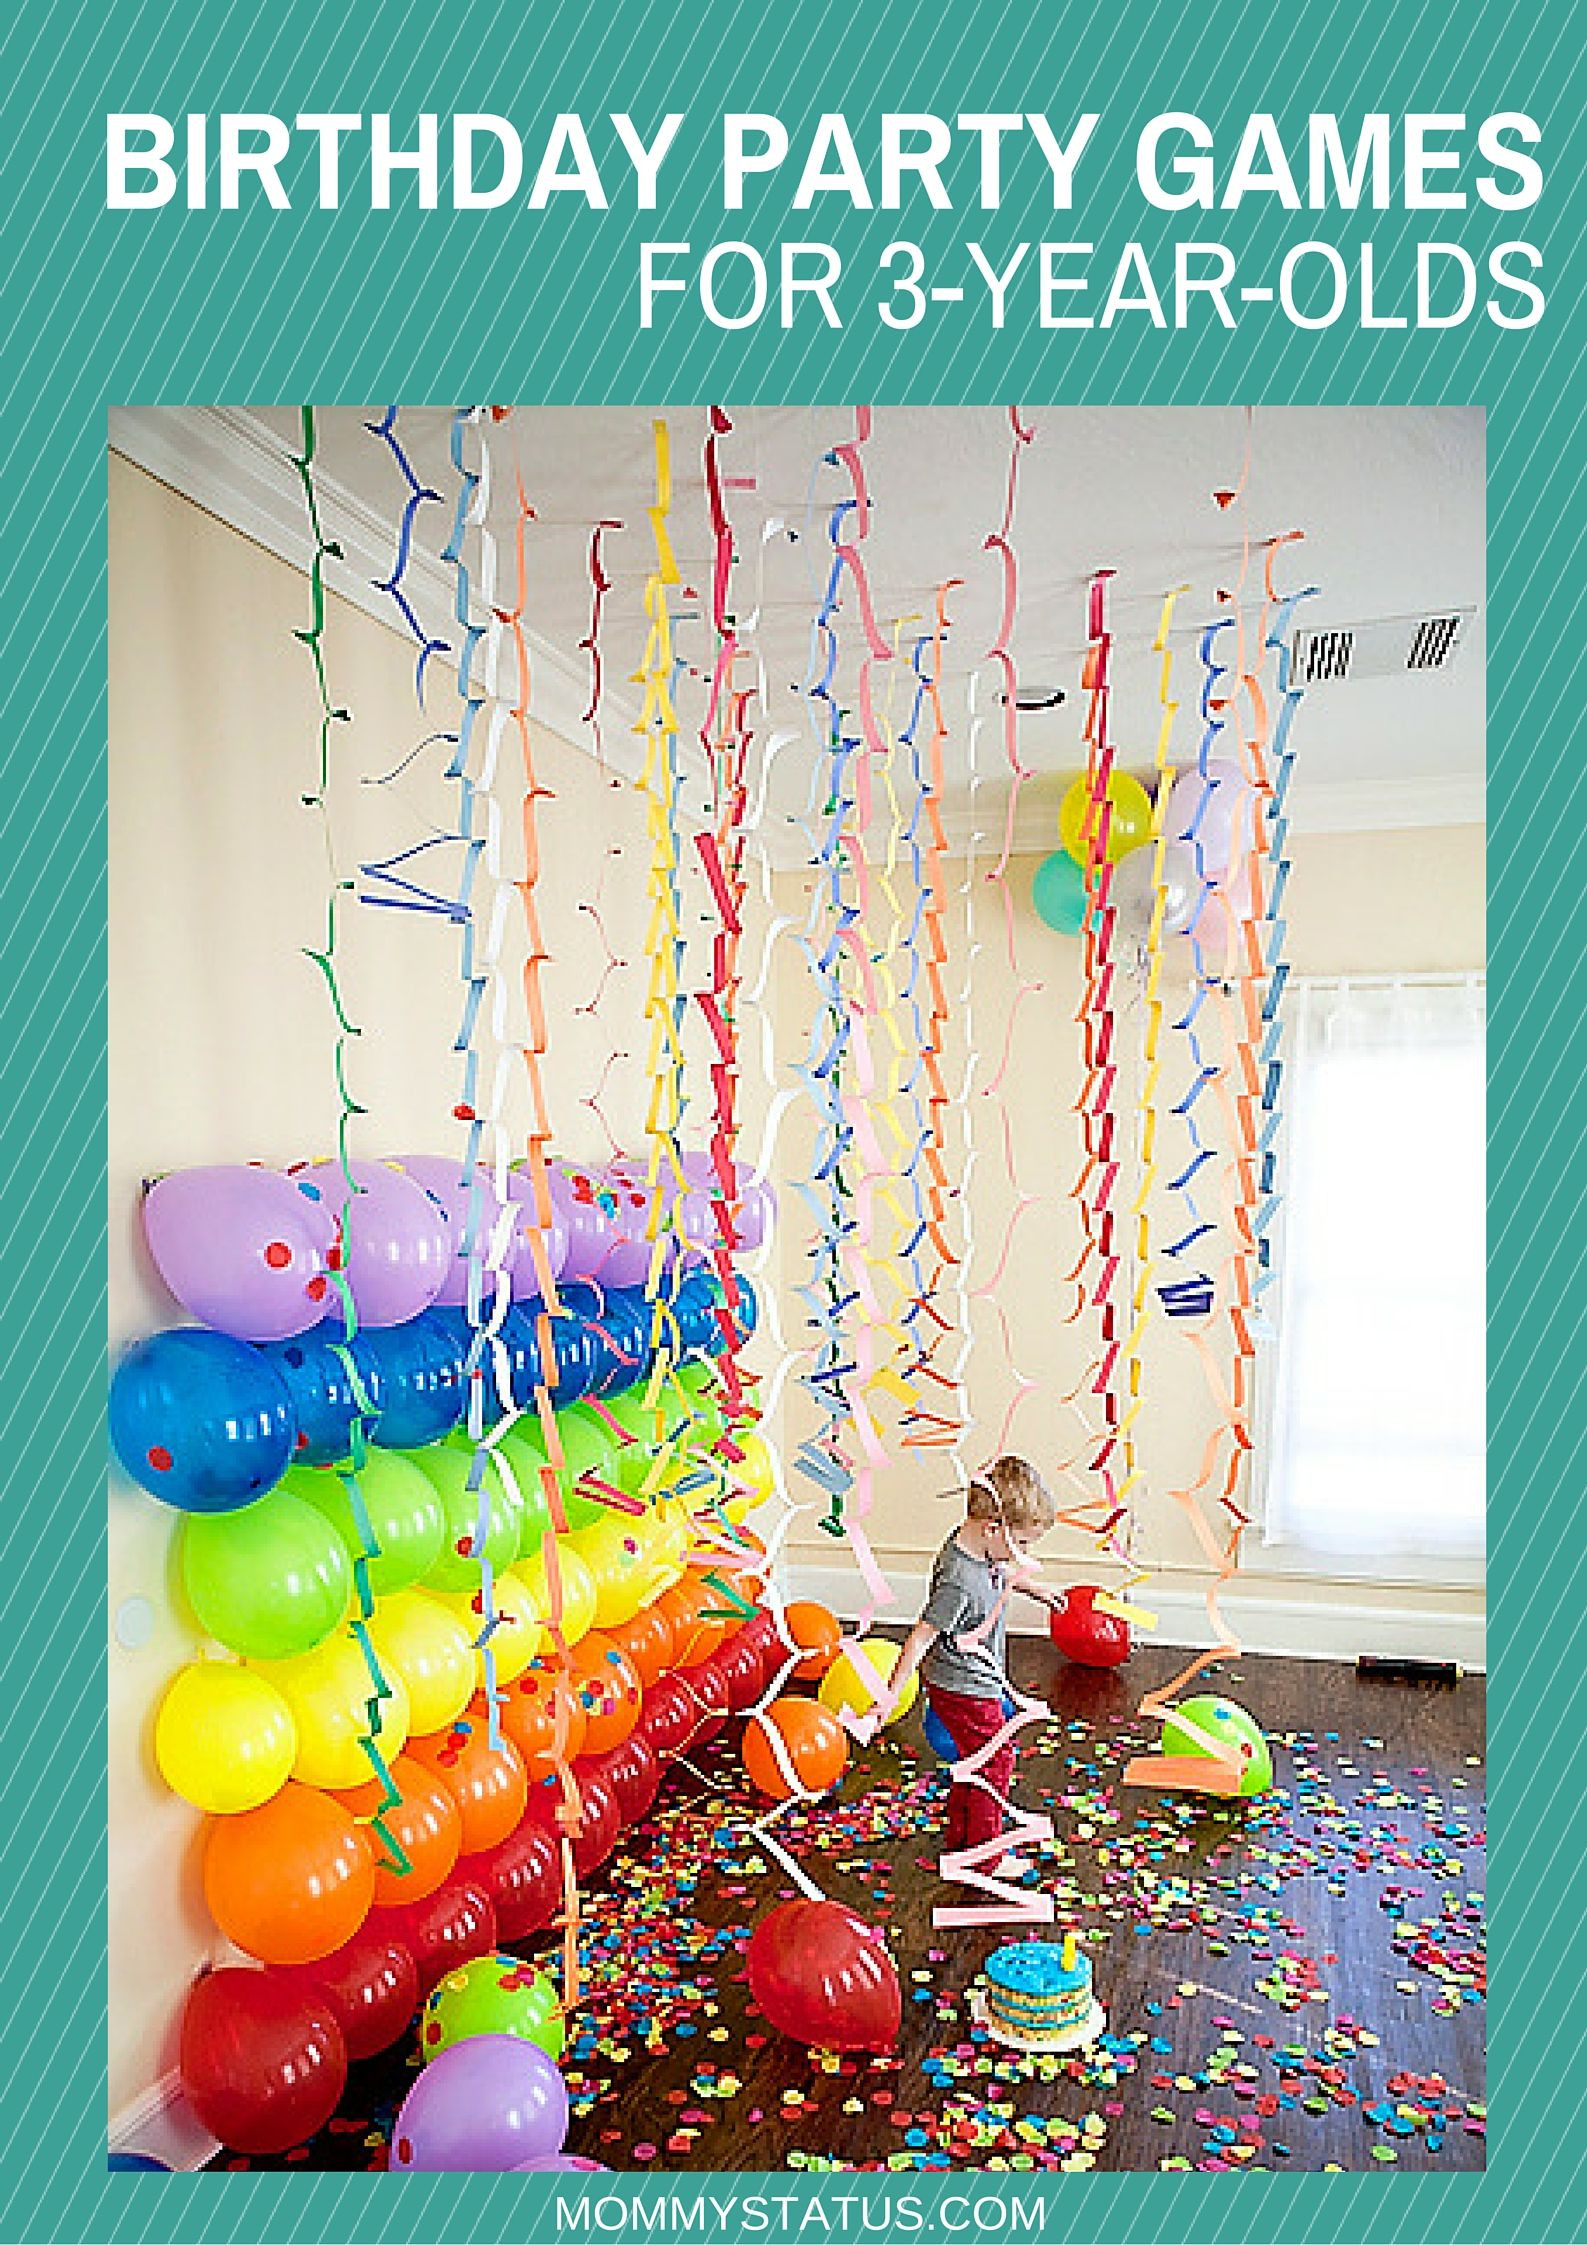 Birthday Party Activities For Toddlers  Birthday Party Games